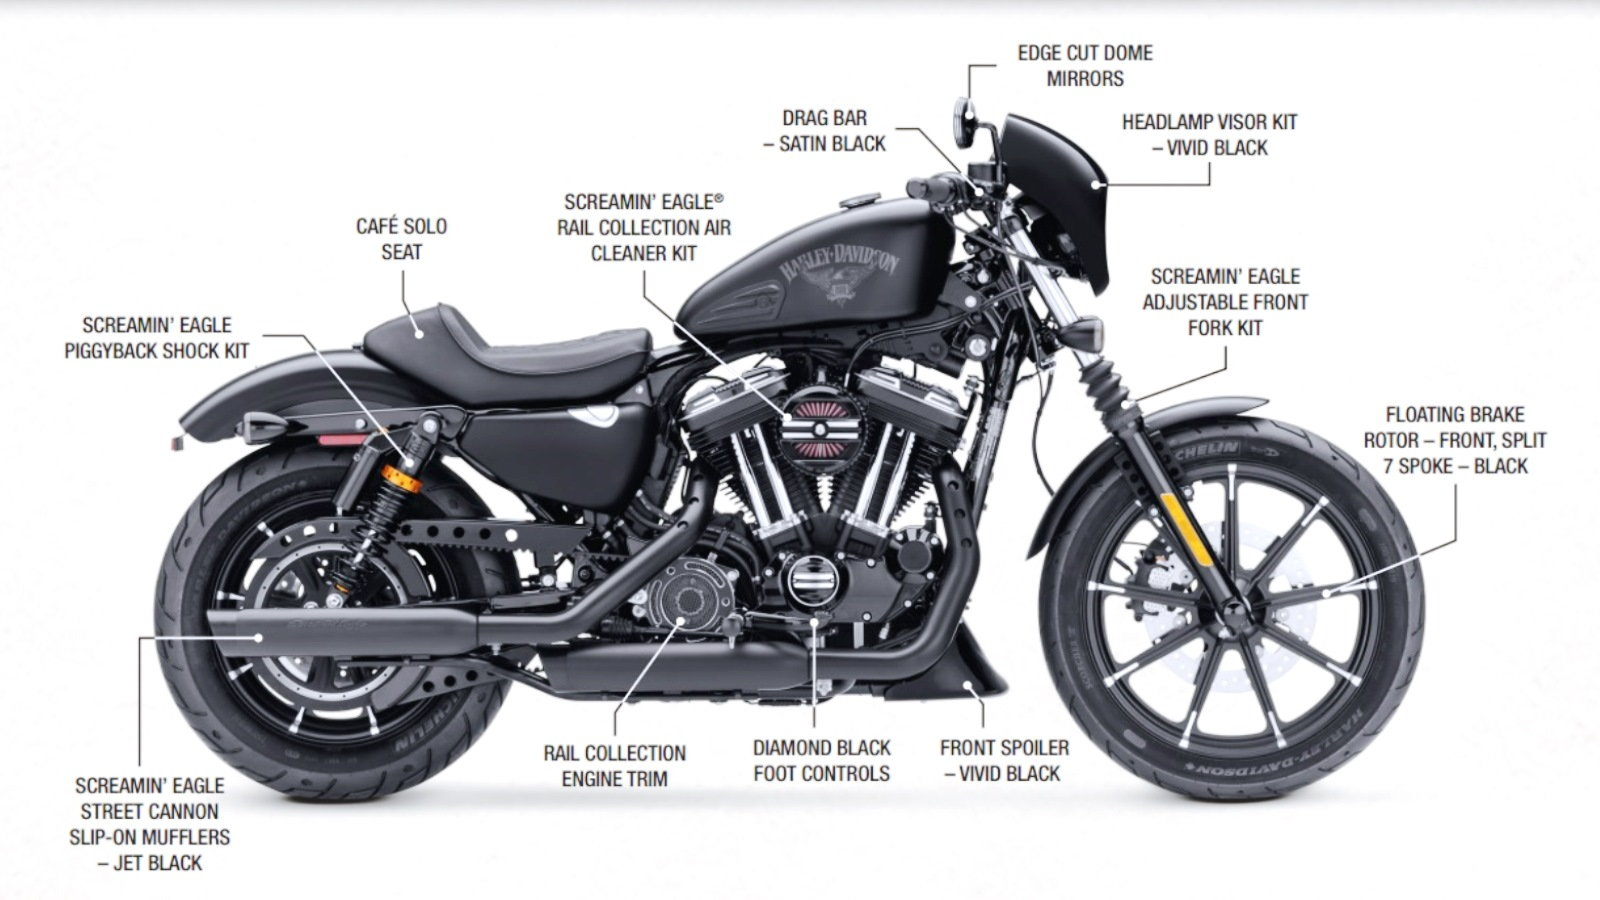 Softail Wiring Diagram | Wiring Diagram Database on harley wide glide wiring diagram, harley street glide wiring diagram, harley sportster 1200 wiring diagram,